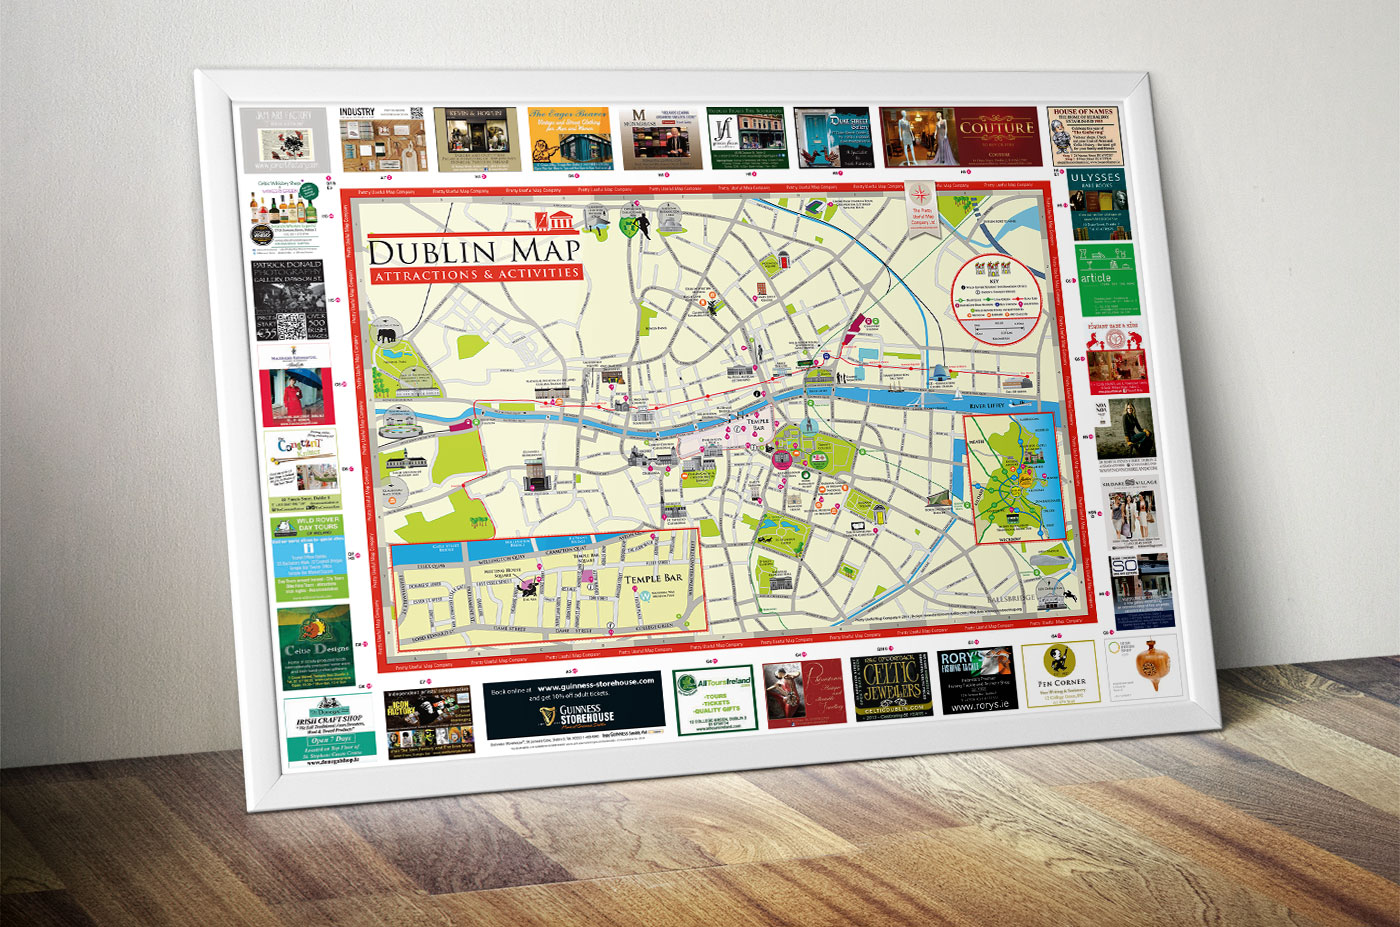 Dublin Attractions Tourism Map   Web Design   Graphic Design ... on denver attractions map, los angeles california attractions map, italy attractions map, ireland sightseeing map, istanbul turkey attractions map, gloucester ma attractions map, orlando area attractions map, montreal canada attractions map, kilkenny ireland map, cancun mexico attractions map, ireland location in world map, rick steves ireland map, dublin walking tour map, cozumel mexico attractions map, dublin city map pdf, dublin tourist map printable, scotland attractions map, dublin street map, kentucky attractions map, valletta malta attractions map,